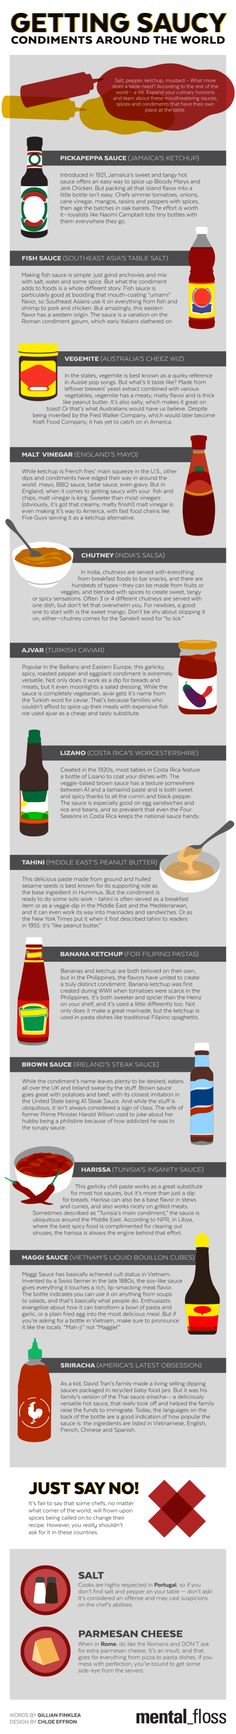 Getting Saucy: Condiments Around the World